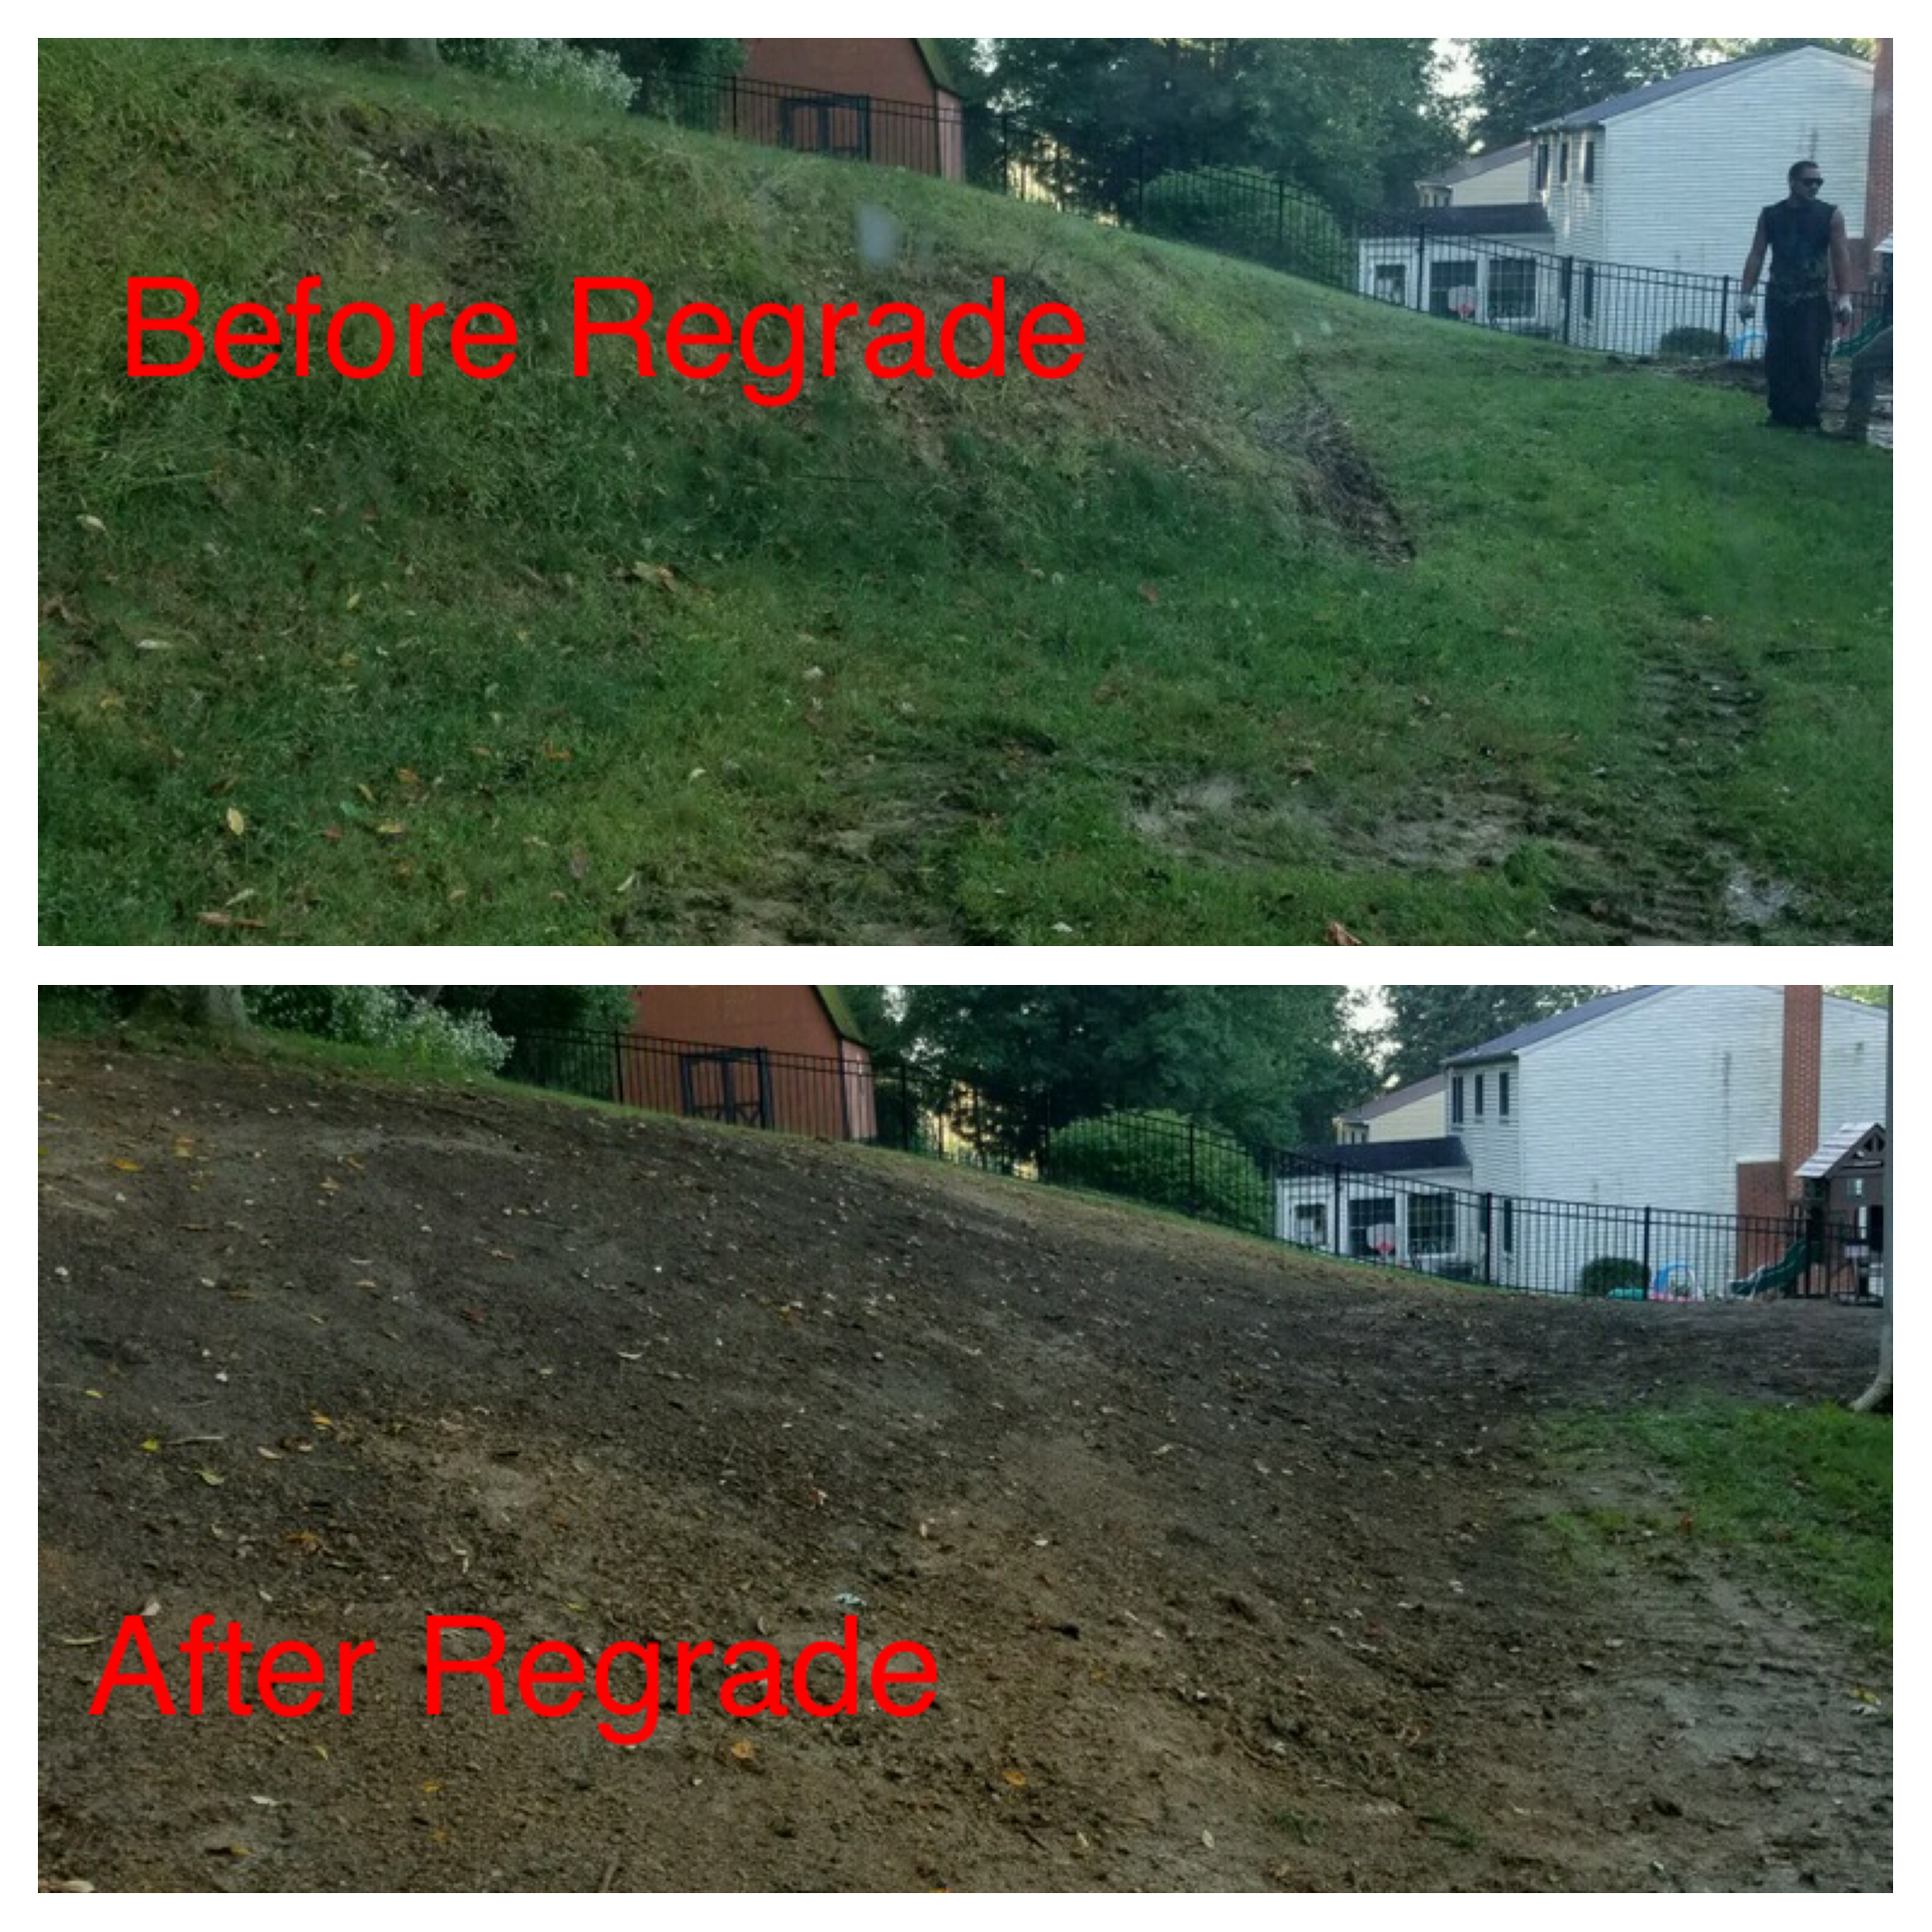 Before And After Regrade